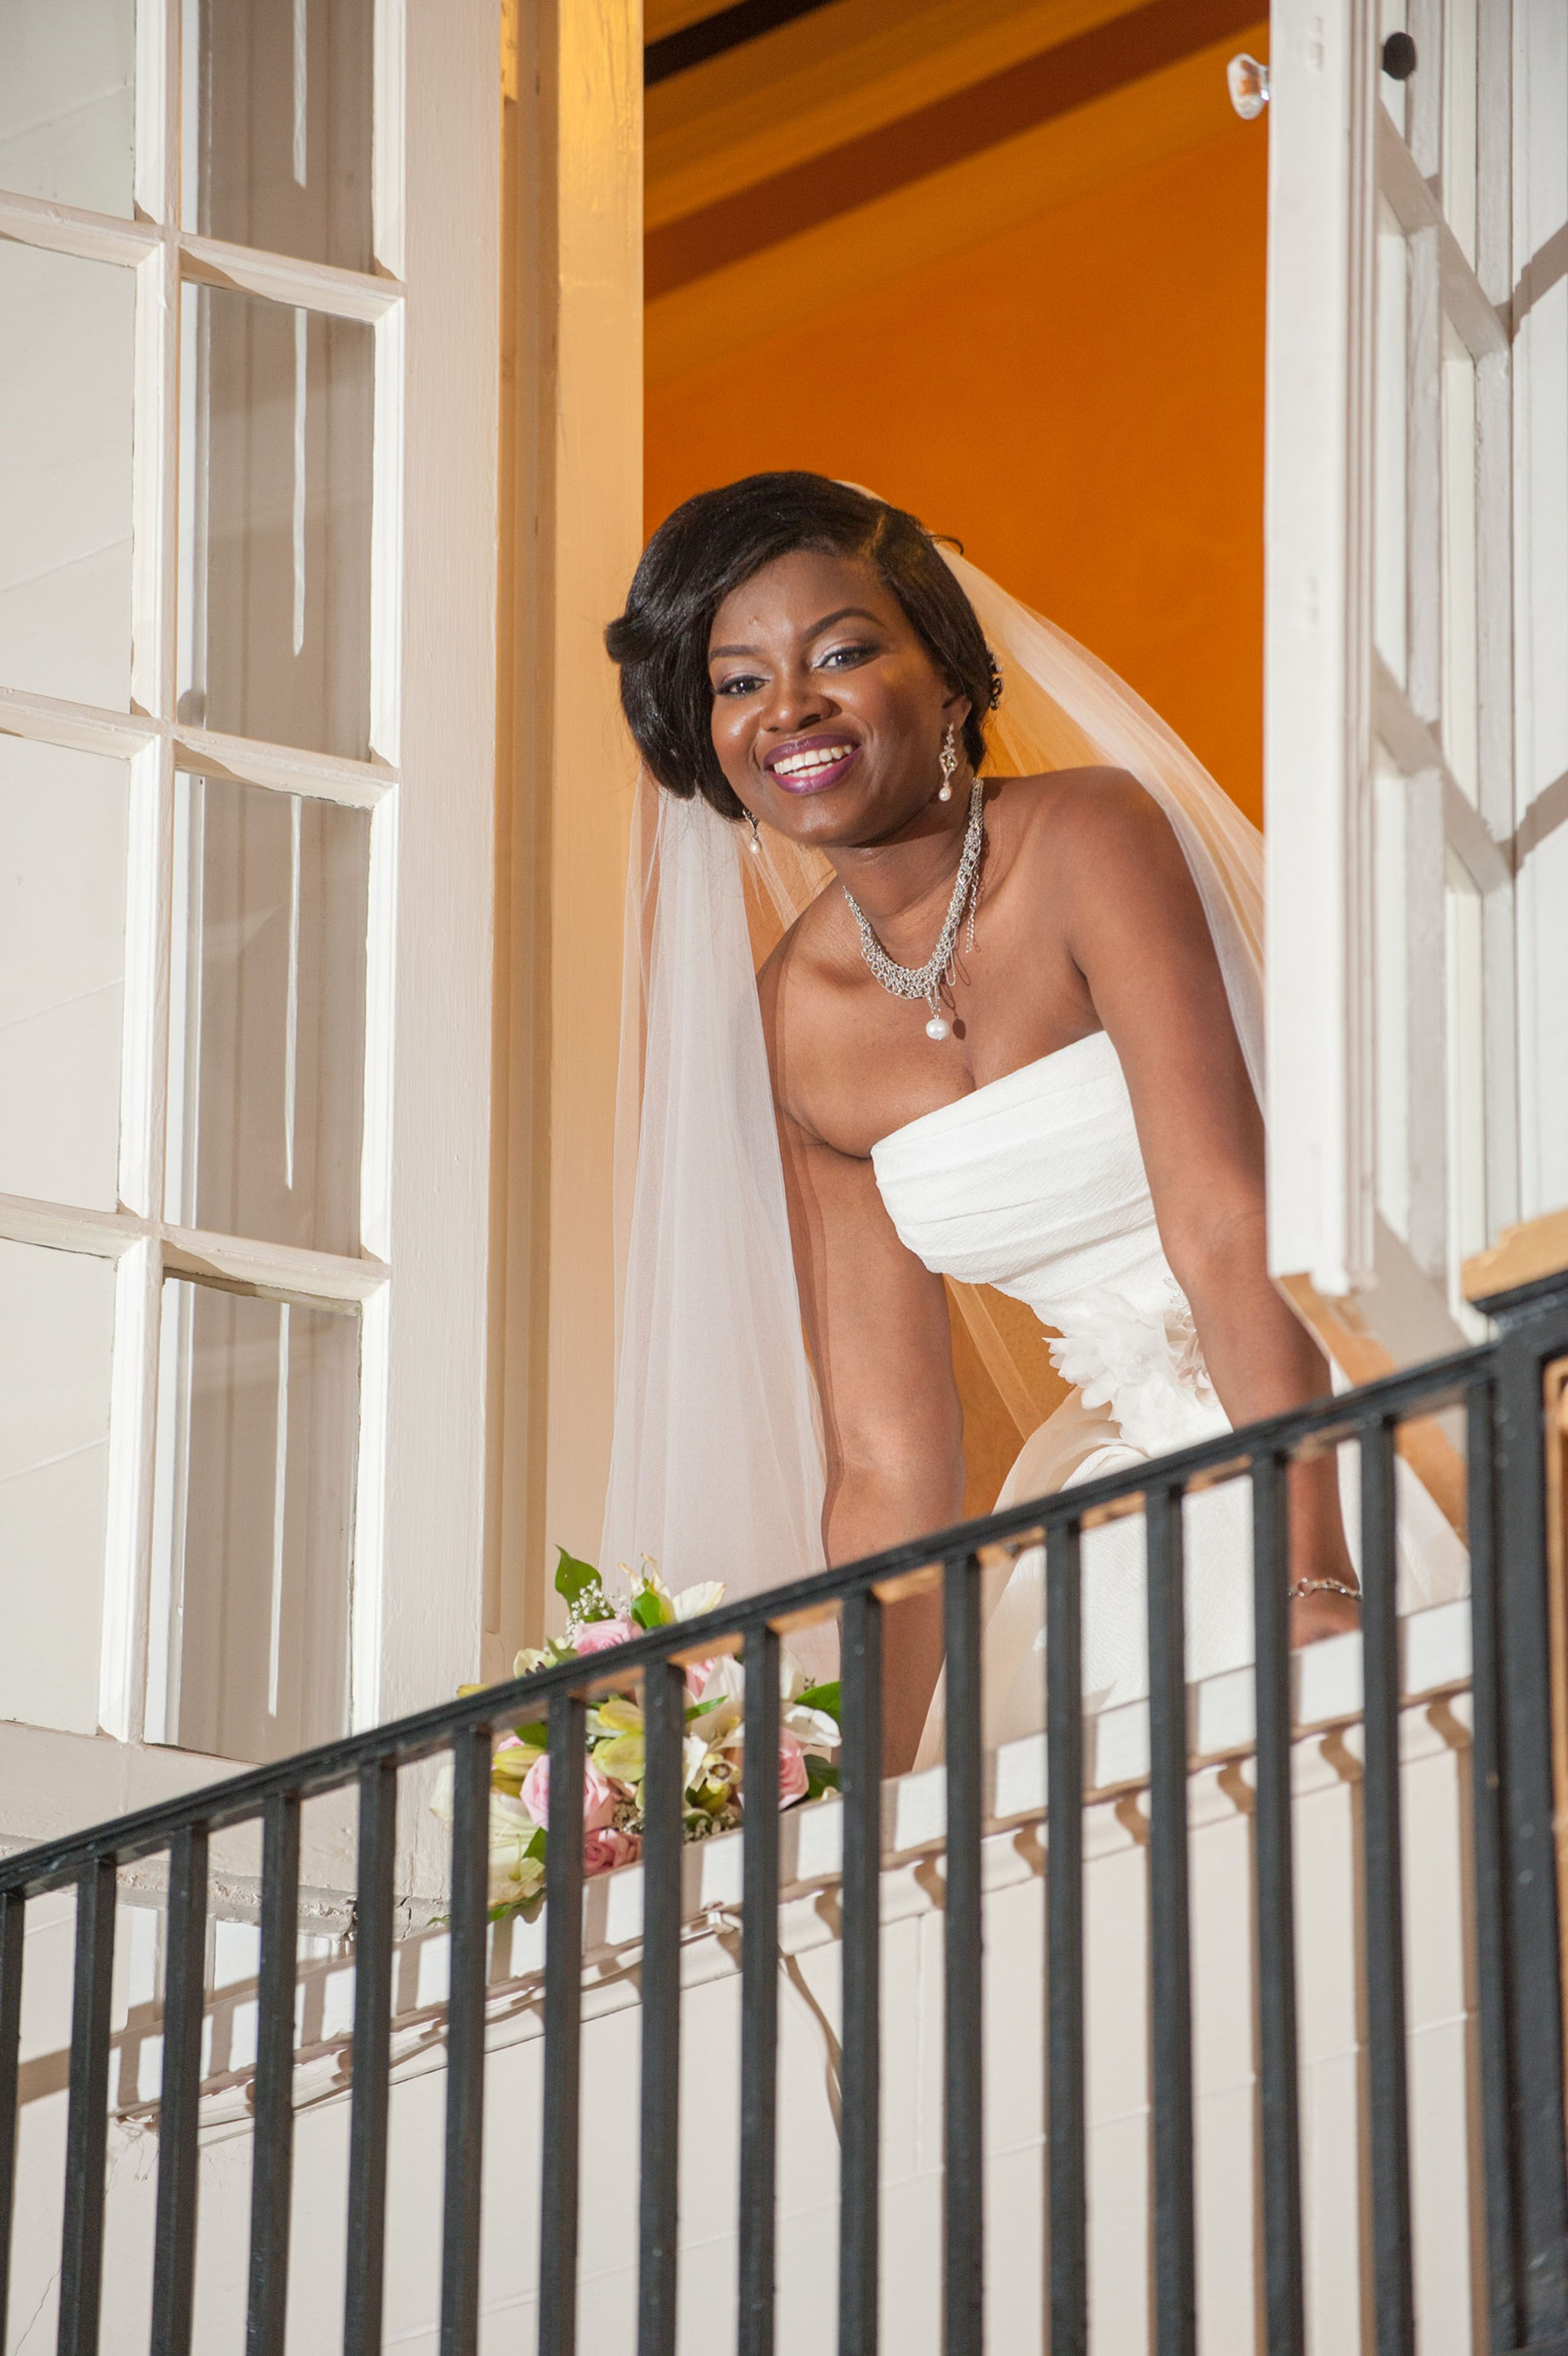 Grand Island Mansion Bride